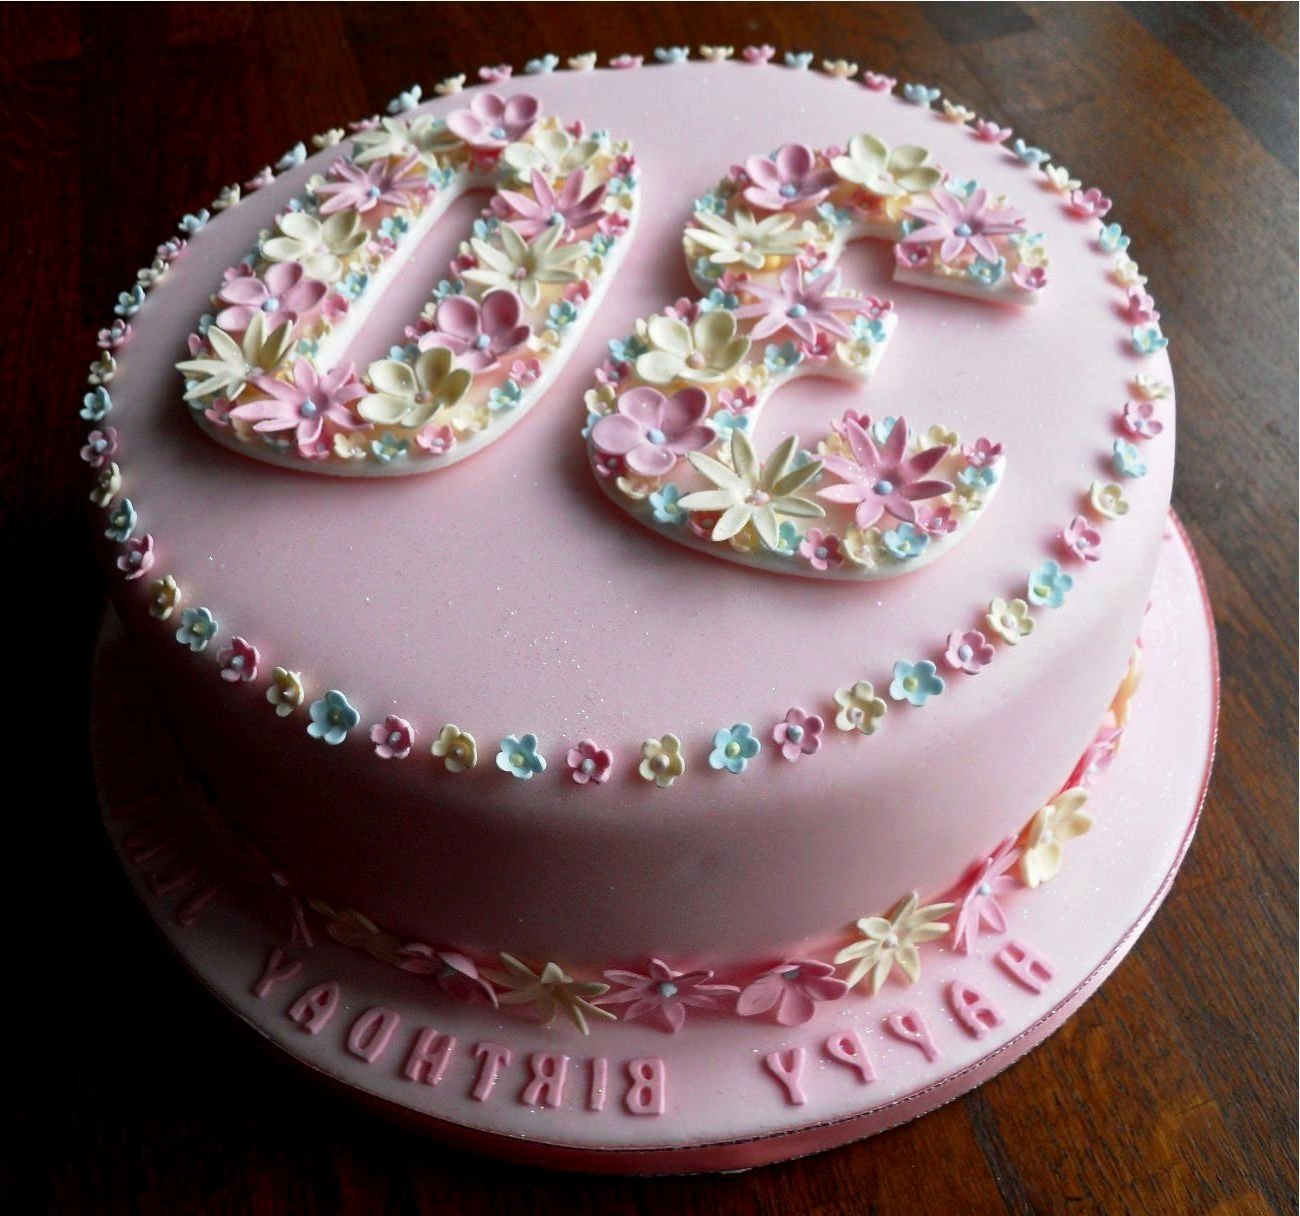 birthday cake decorating ideas for adults - decorating of party